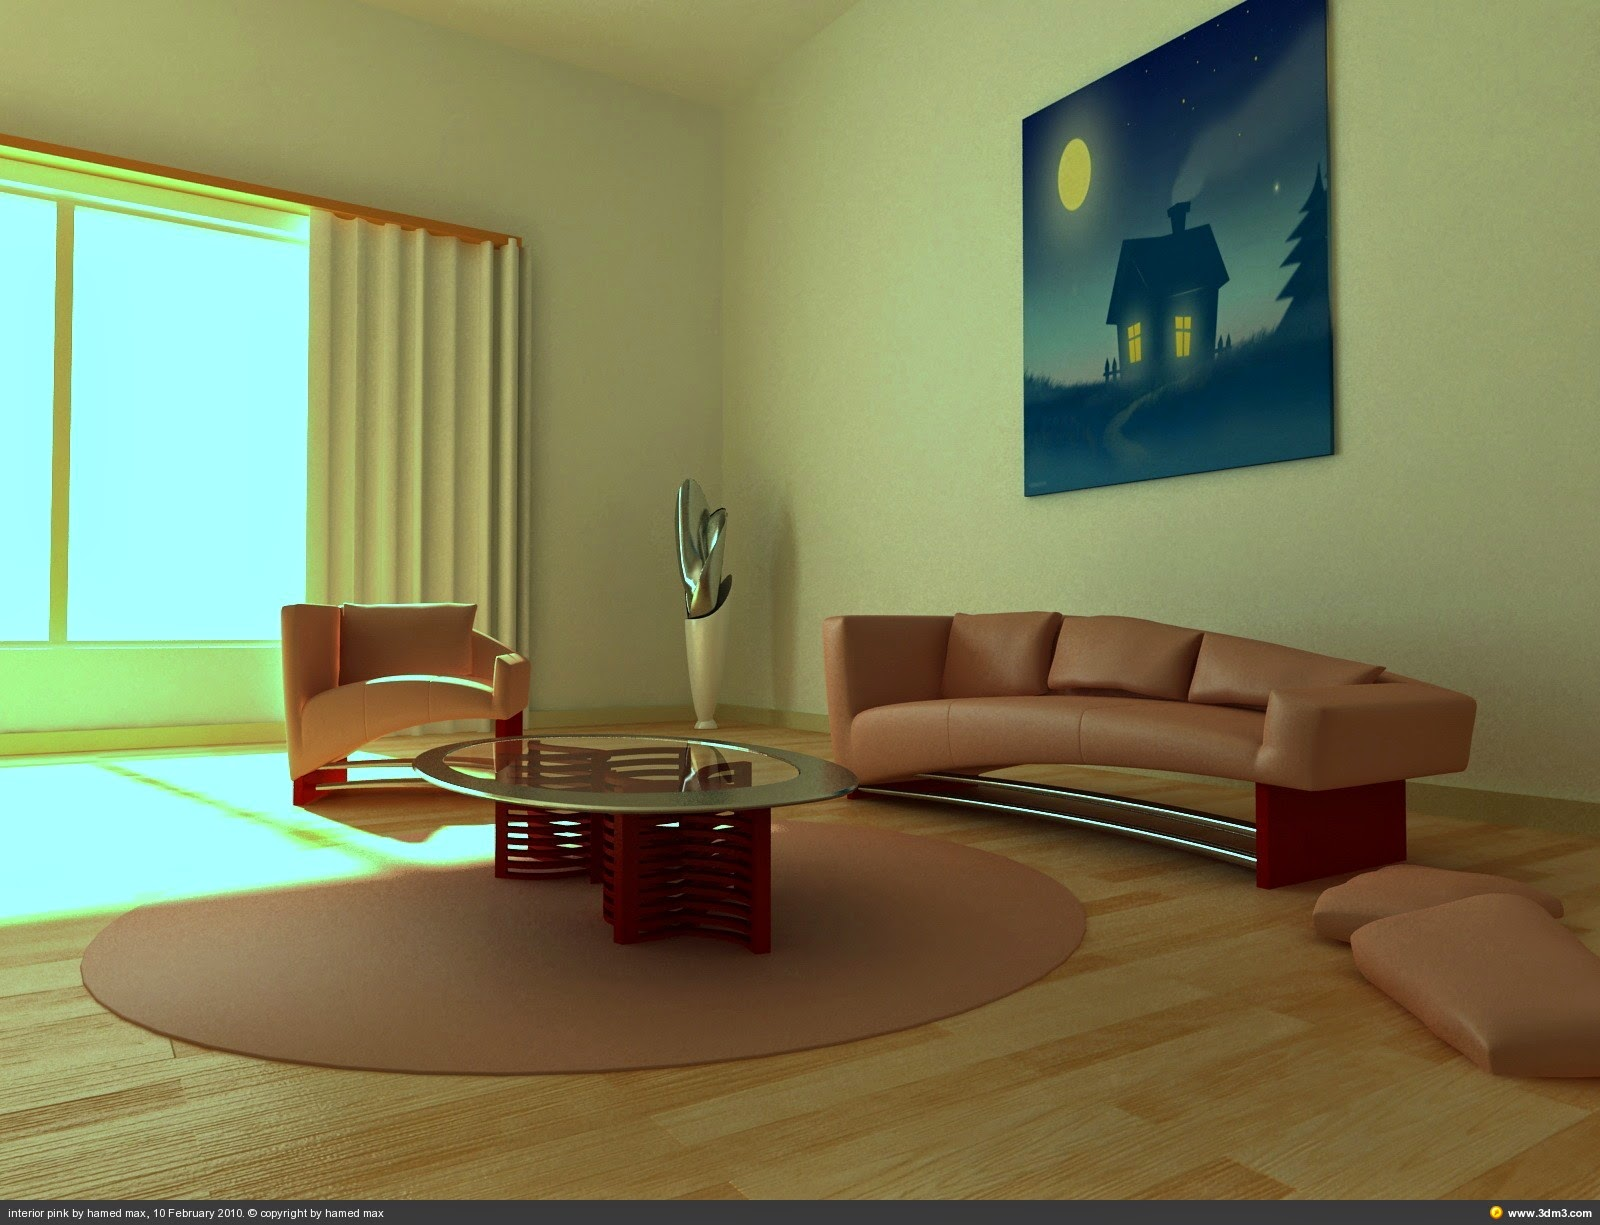 Foundation dezin decor 3ds max interior models for 3ds max design